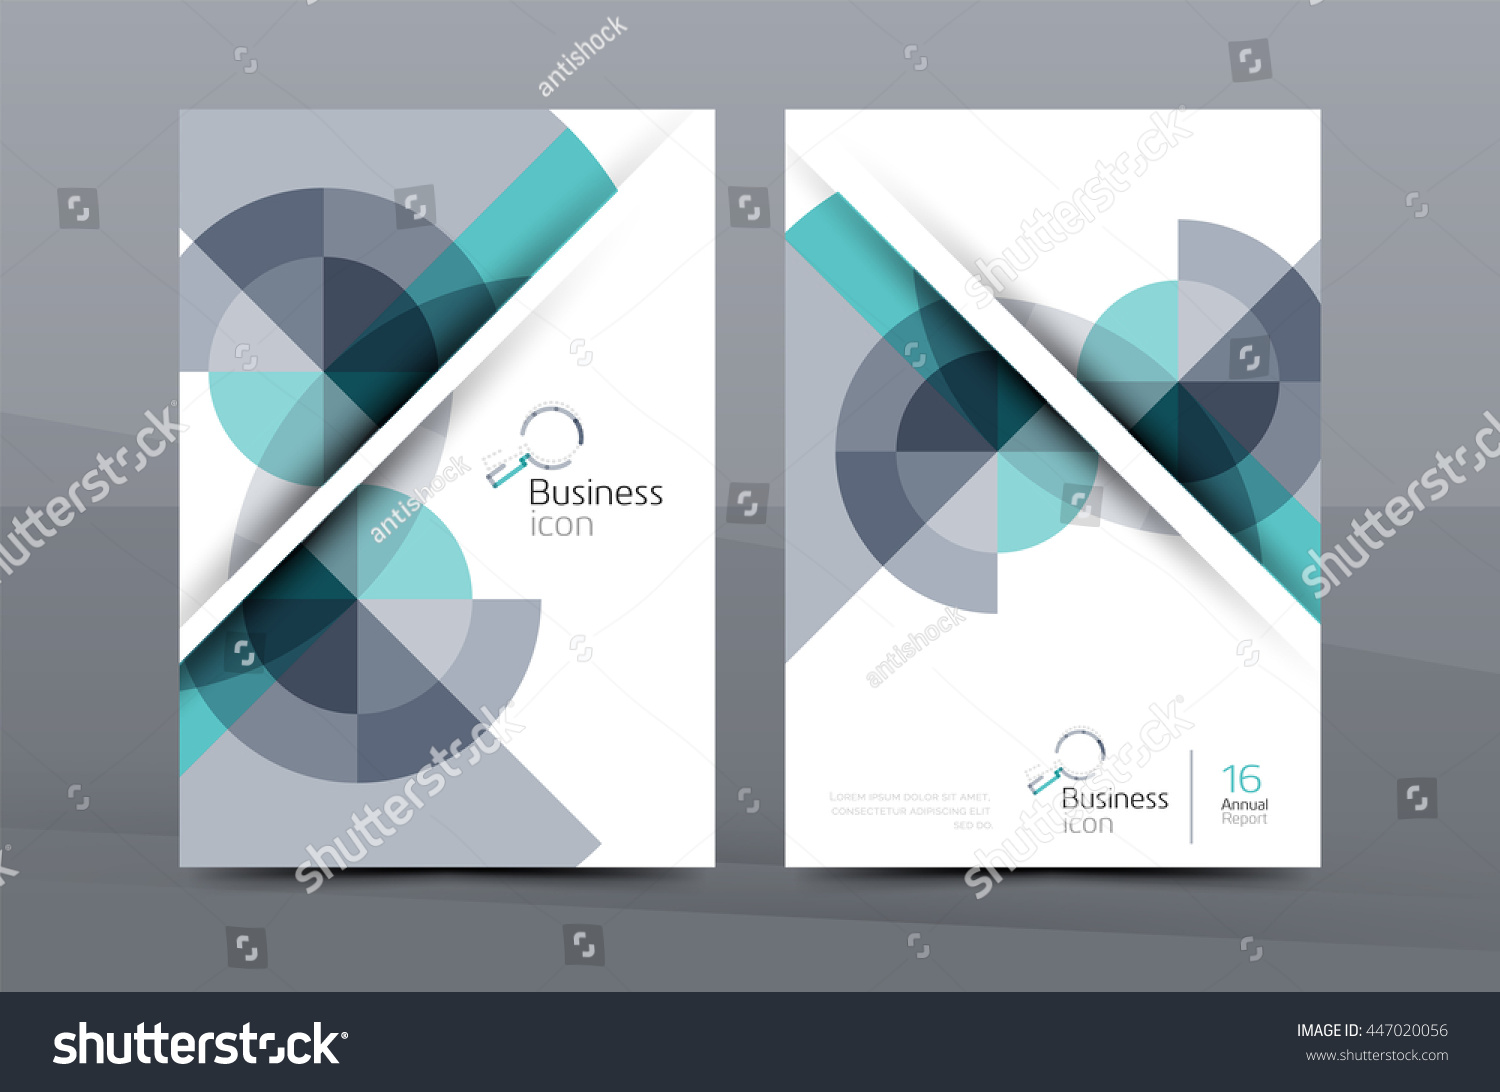 business cover page design brochure flyer layout abstract business cover page design brochure flyer layout abstract presentation background poster a4 size